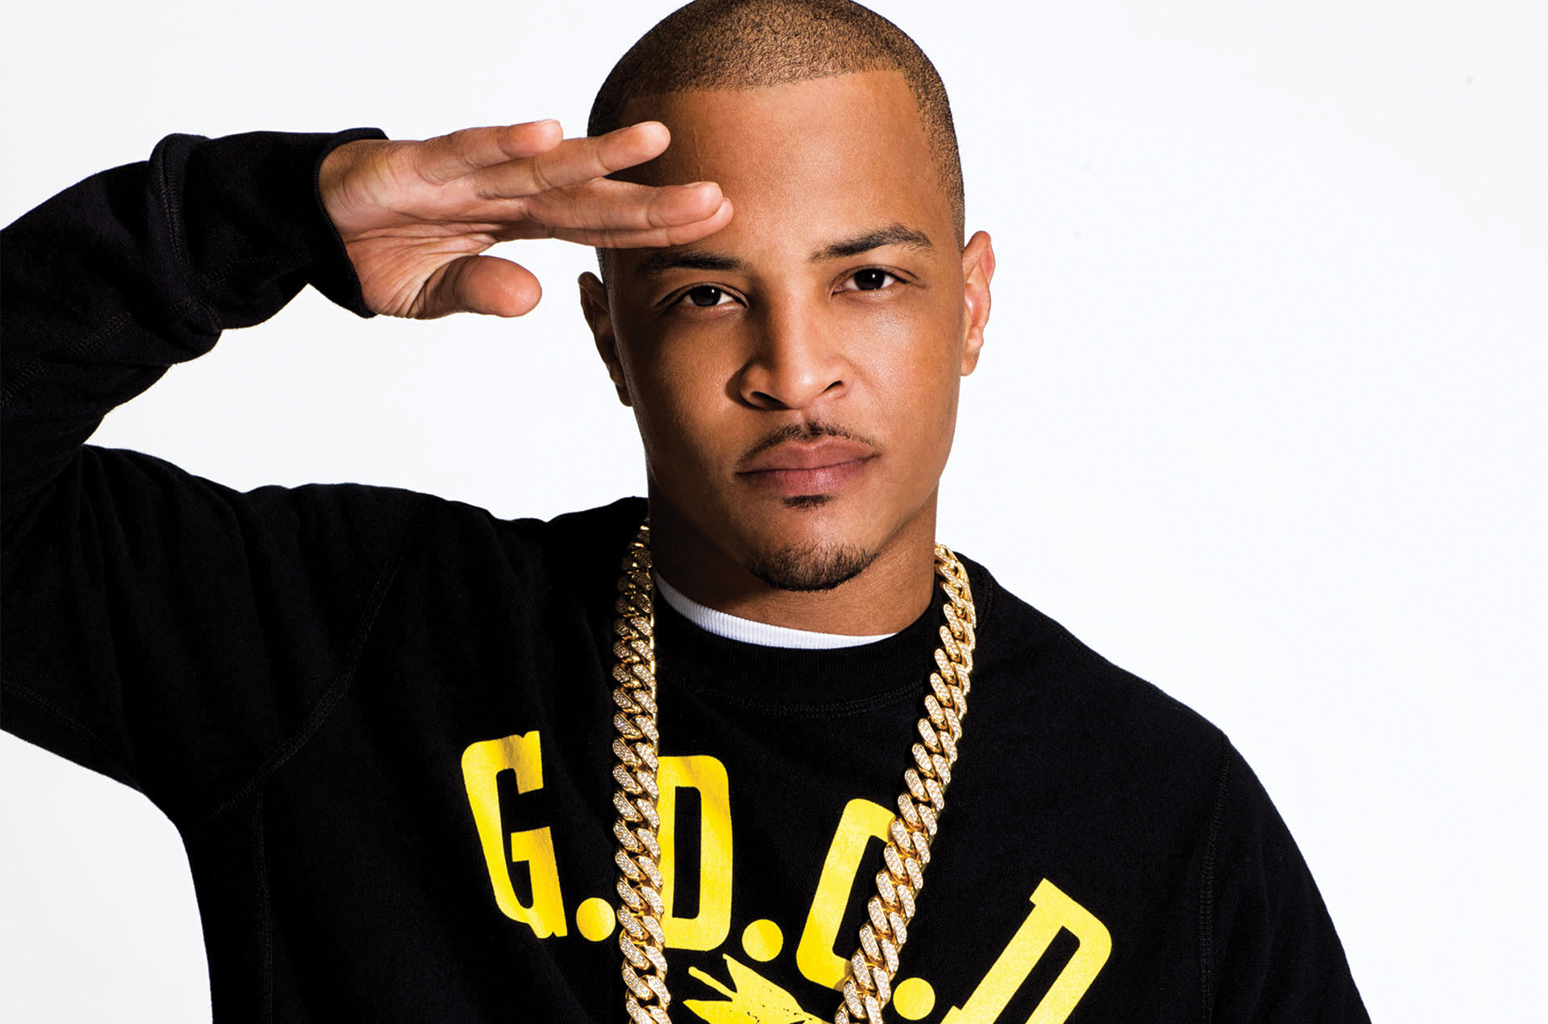 T.I. Has A Message For Us Ahead Of New Year's Eve - Check It Out Here